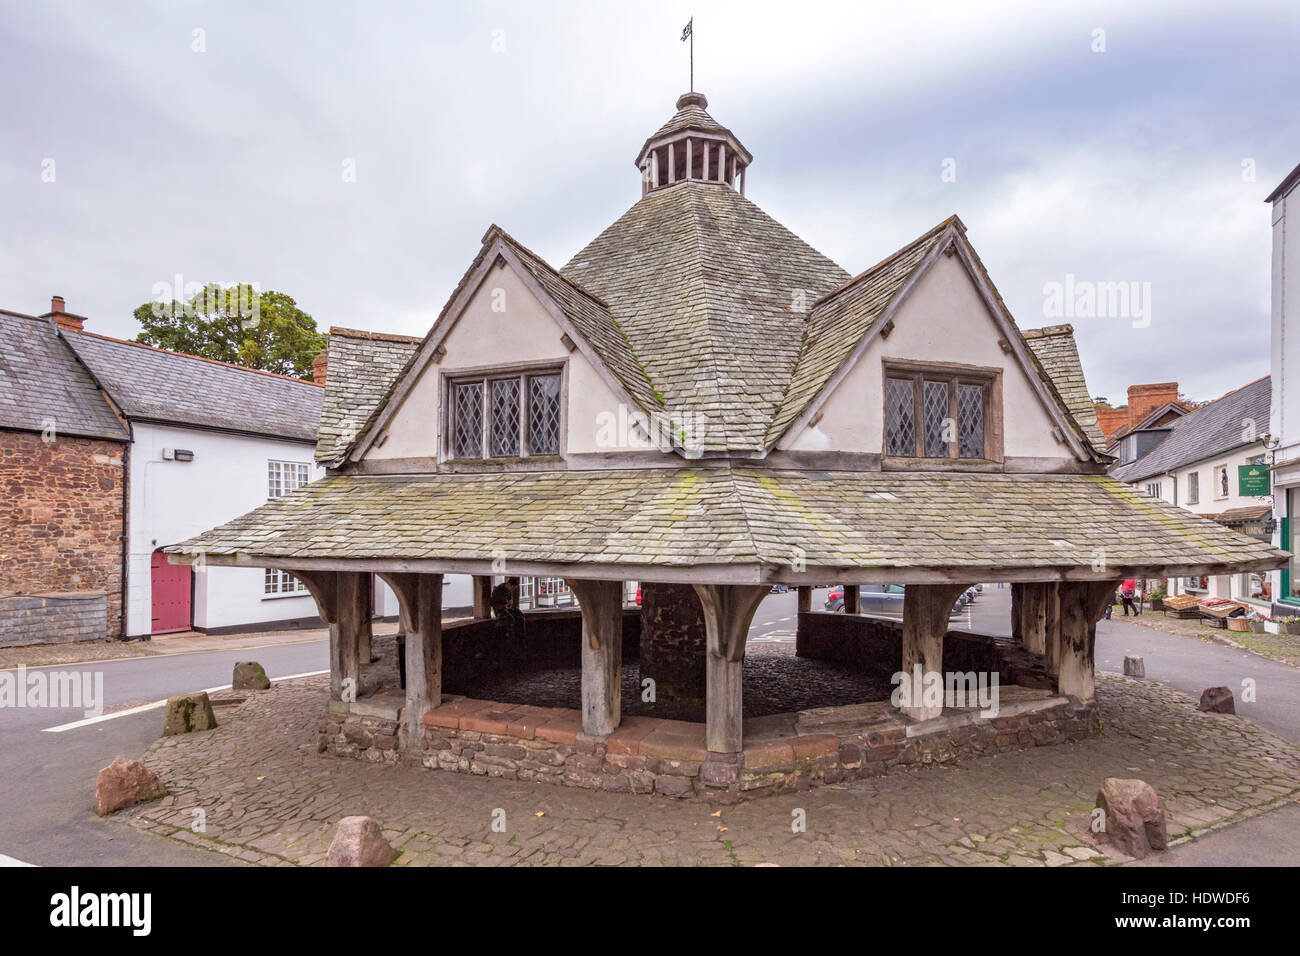 The octagonal Yarn Market in Dunster a Grade I listed building and scheduled ancient monument, Somerset, England, - Stock Image